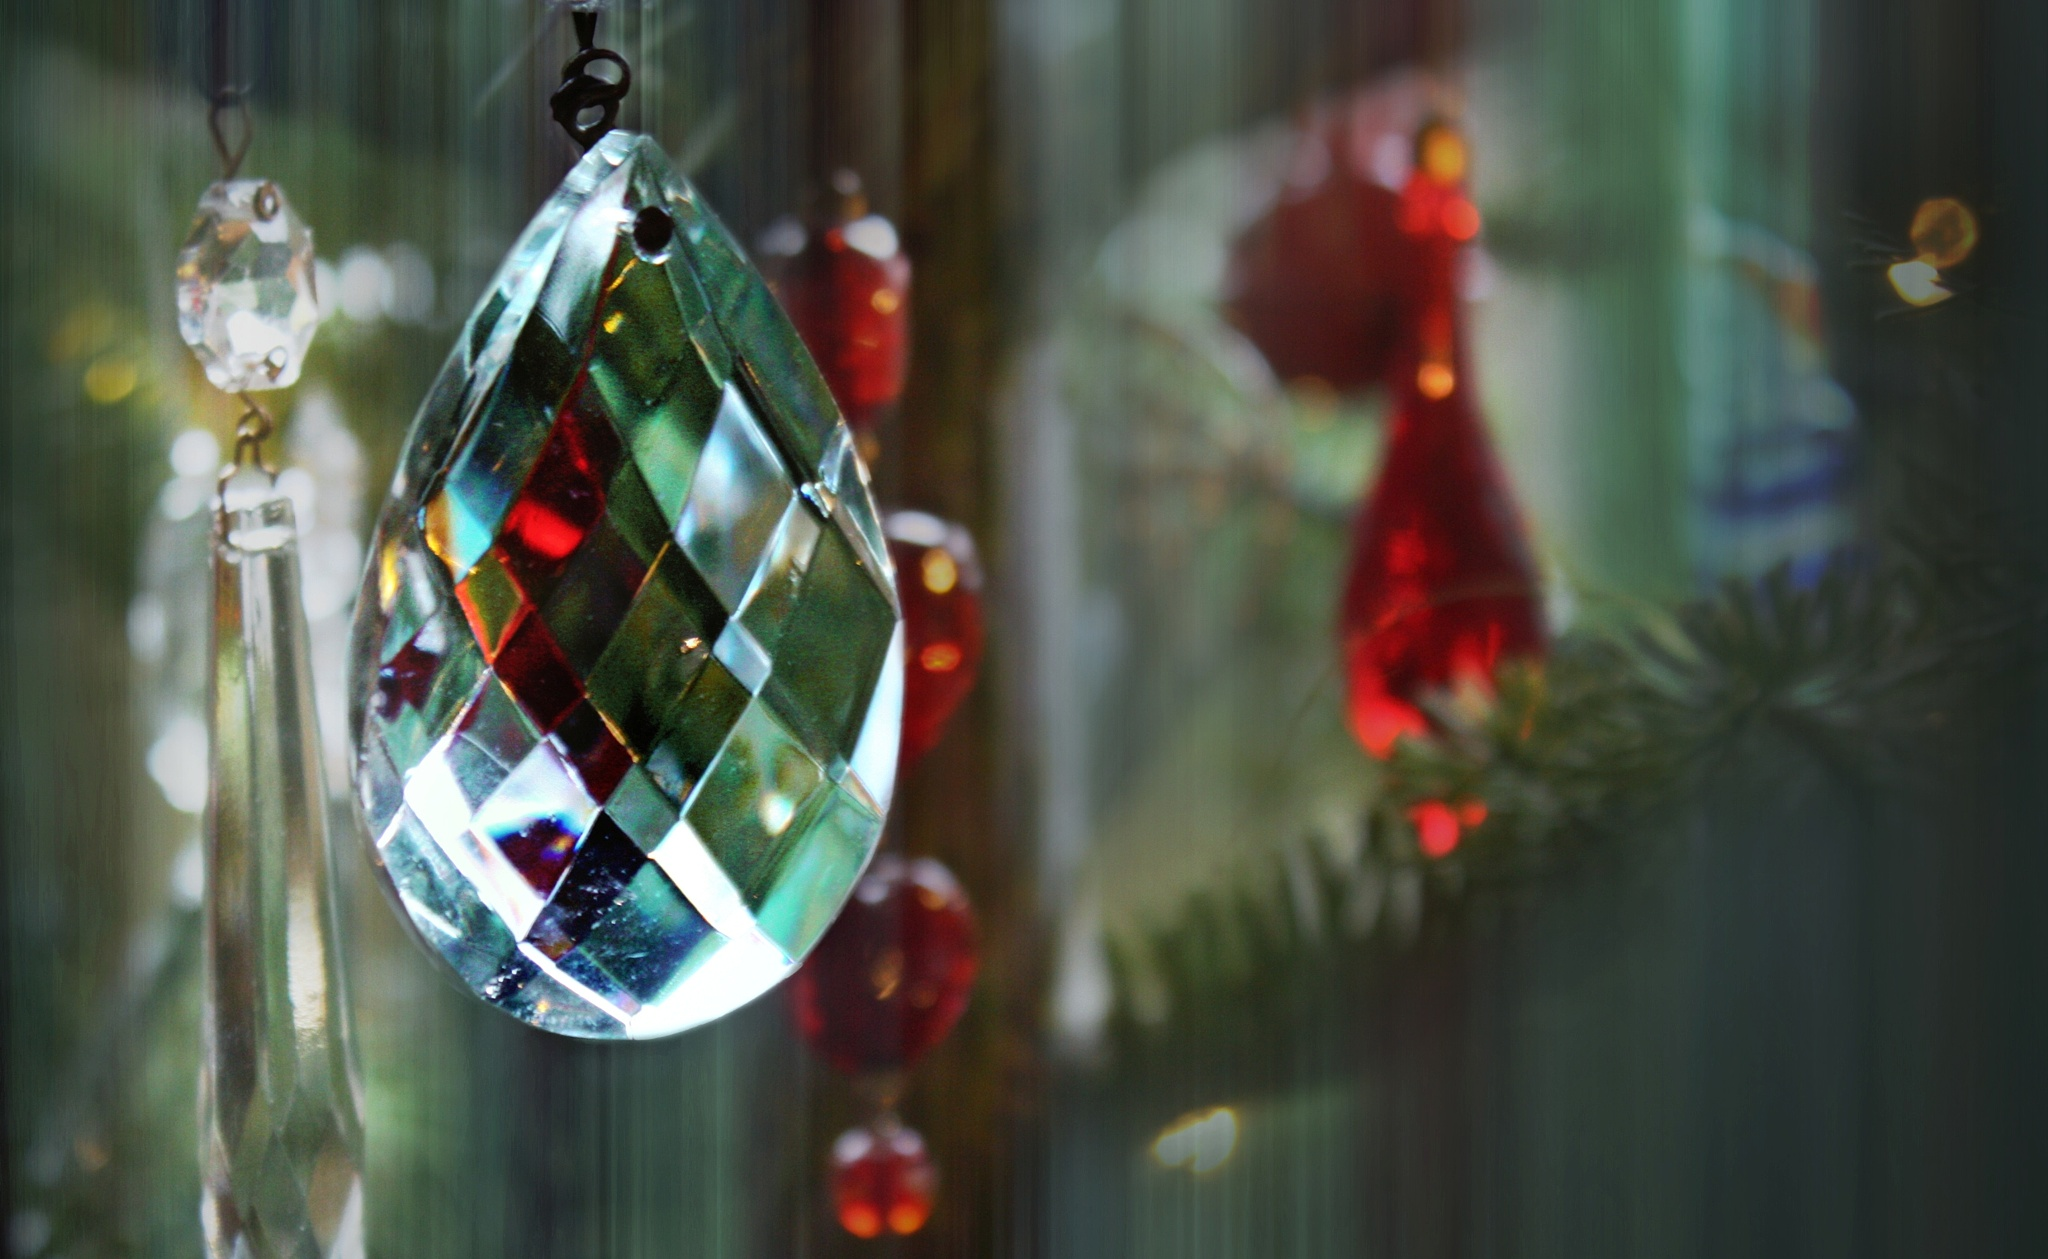 Glass ornaments on the Christmas tree  by Helen Burridge